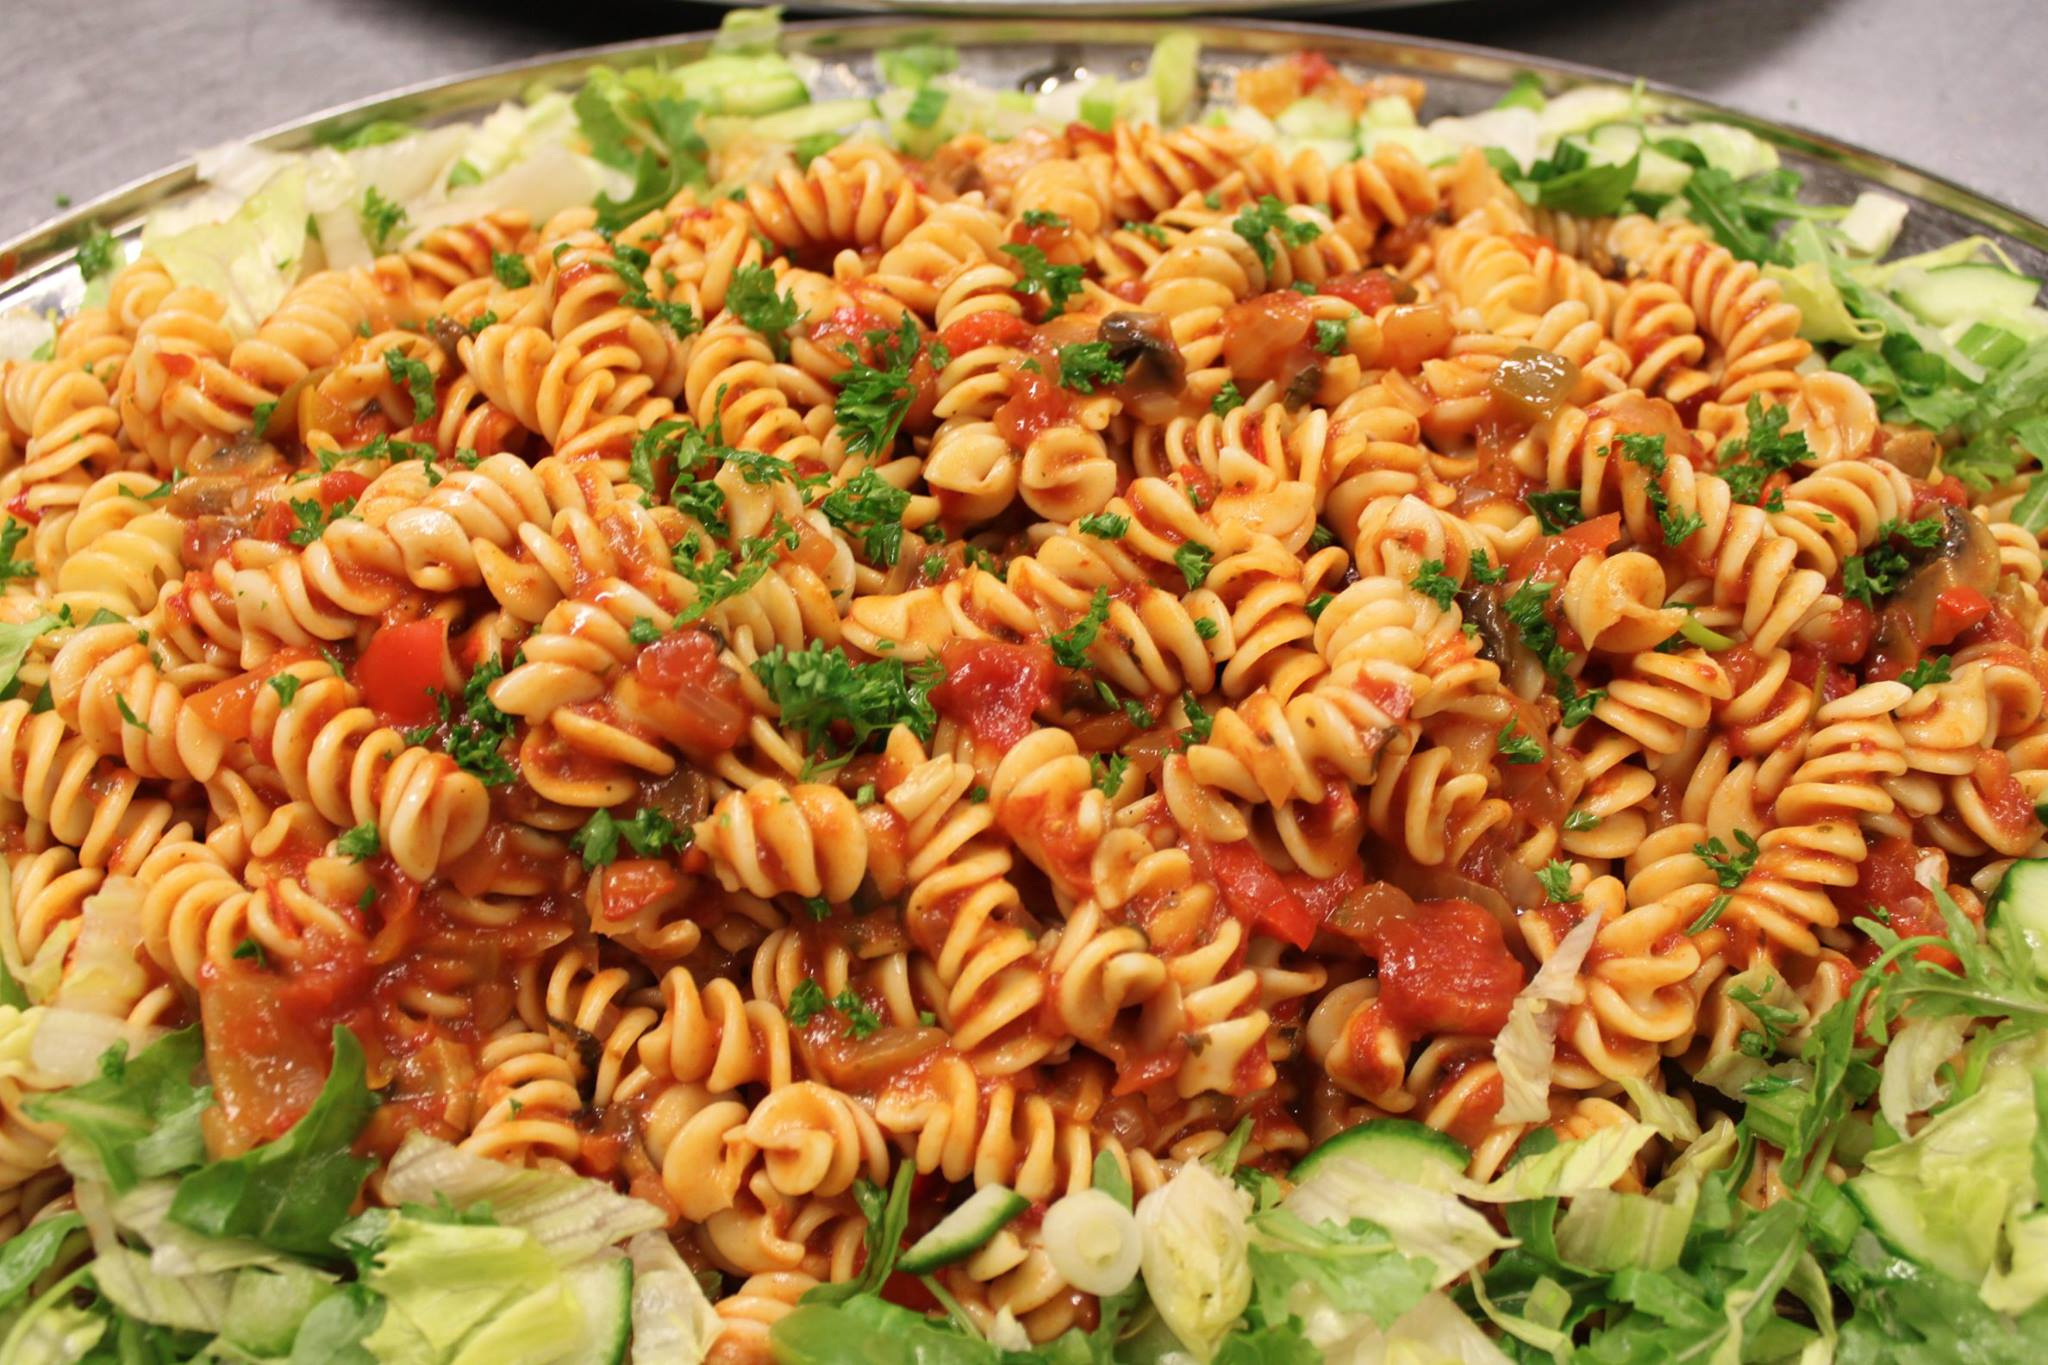 Pasta tossed in a freshly made salsa sauce.